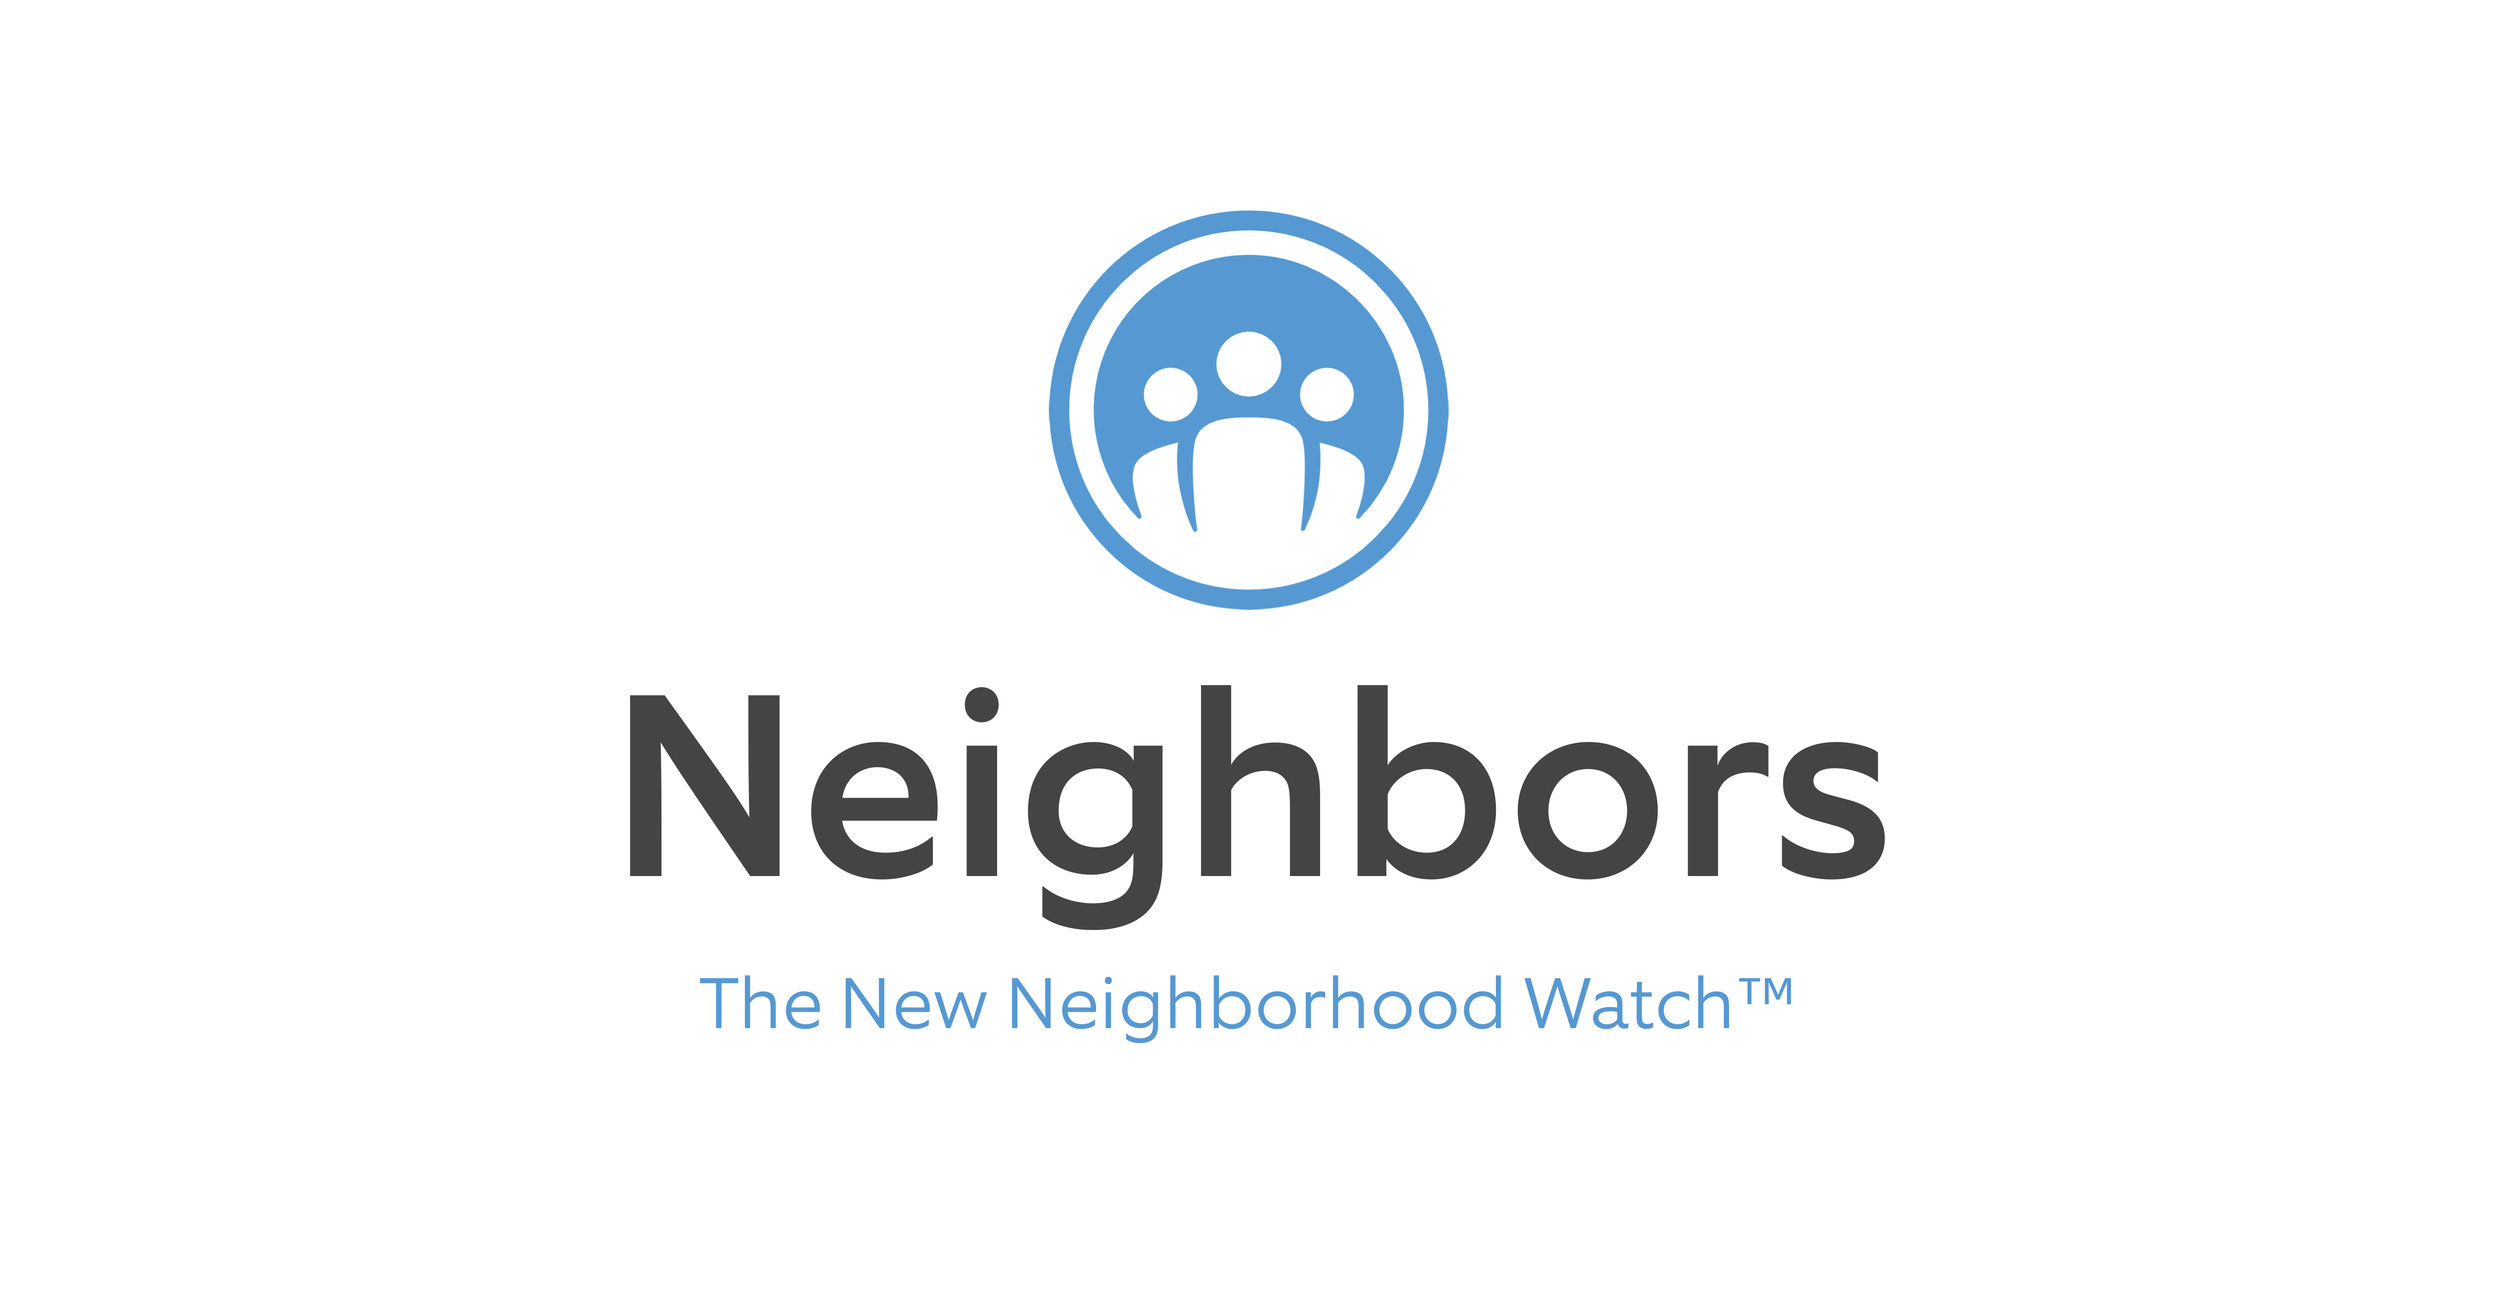 Neighbors-Branding.jpg